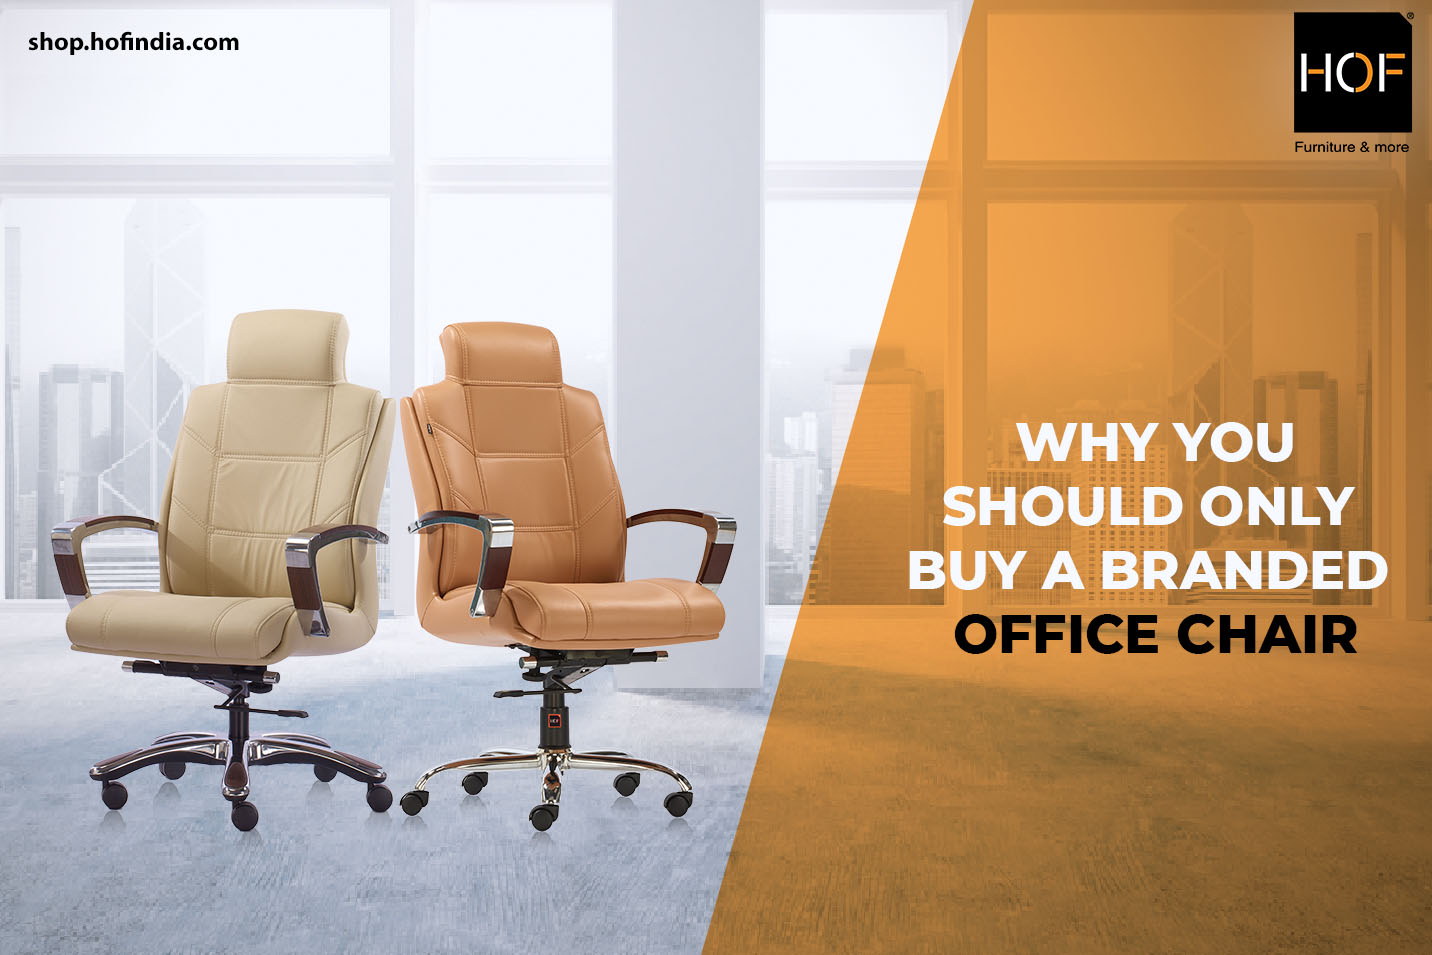 Office Chair For Short Person Here S Why You Should Only Buy A Branded Office Chair Hof India